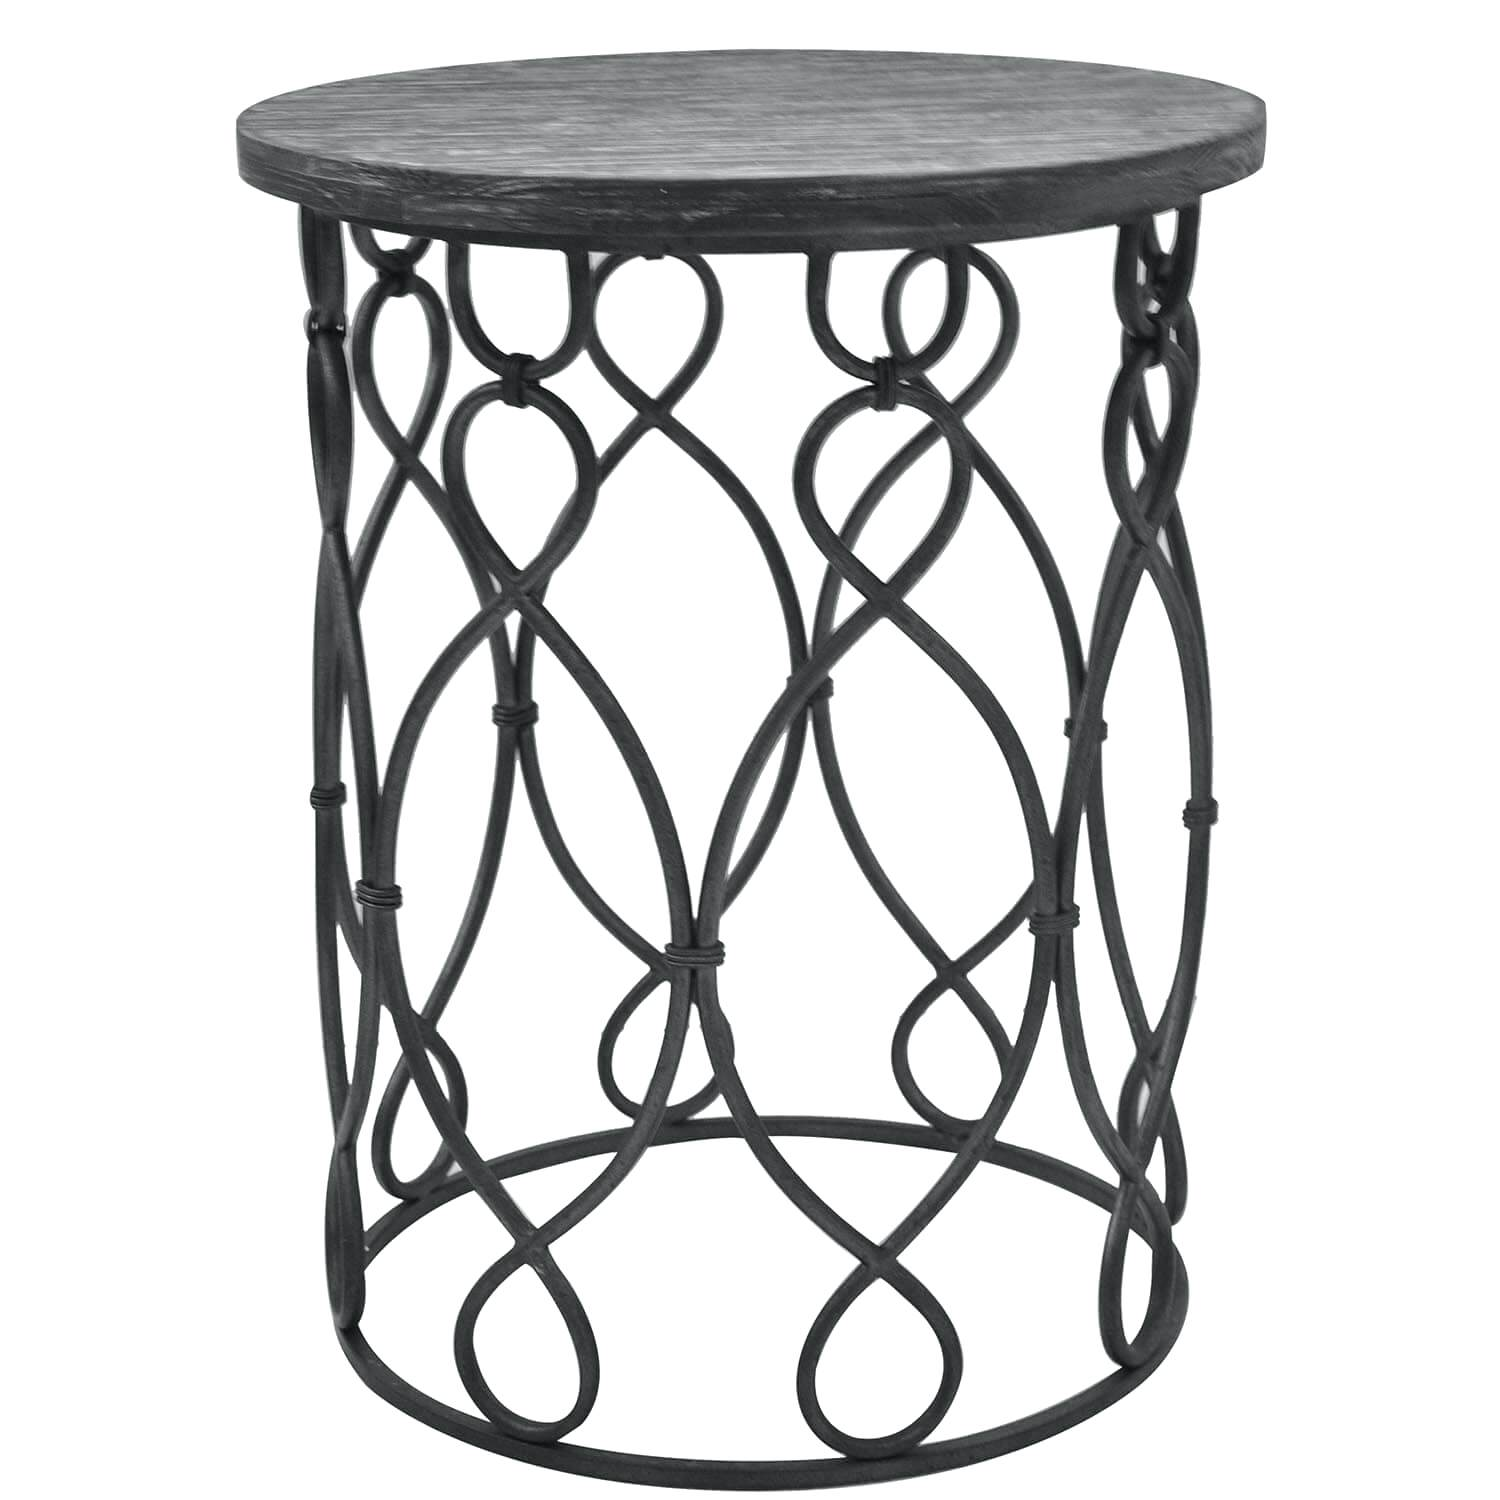 metal accent table round distressed target grand junction wood and outdoor woven thresholdtm white chairs small square coffee magnussen pinebrook end large clock diy patio cooler